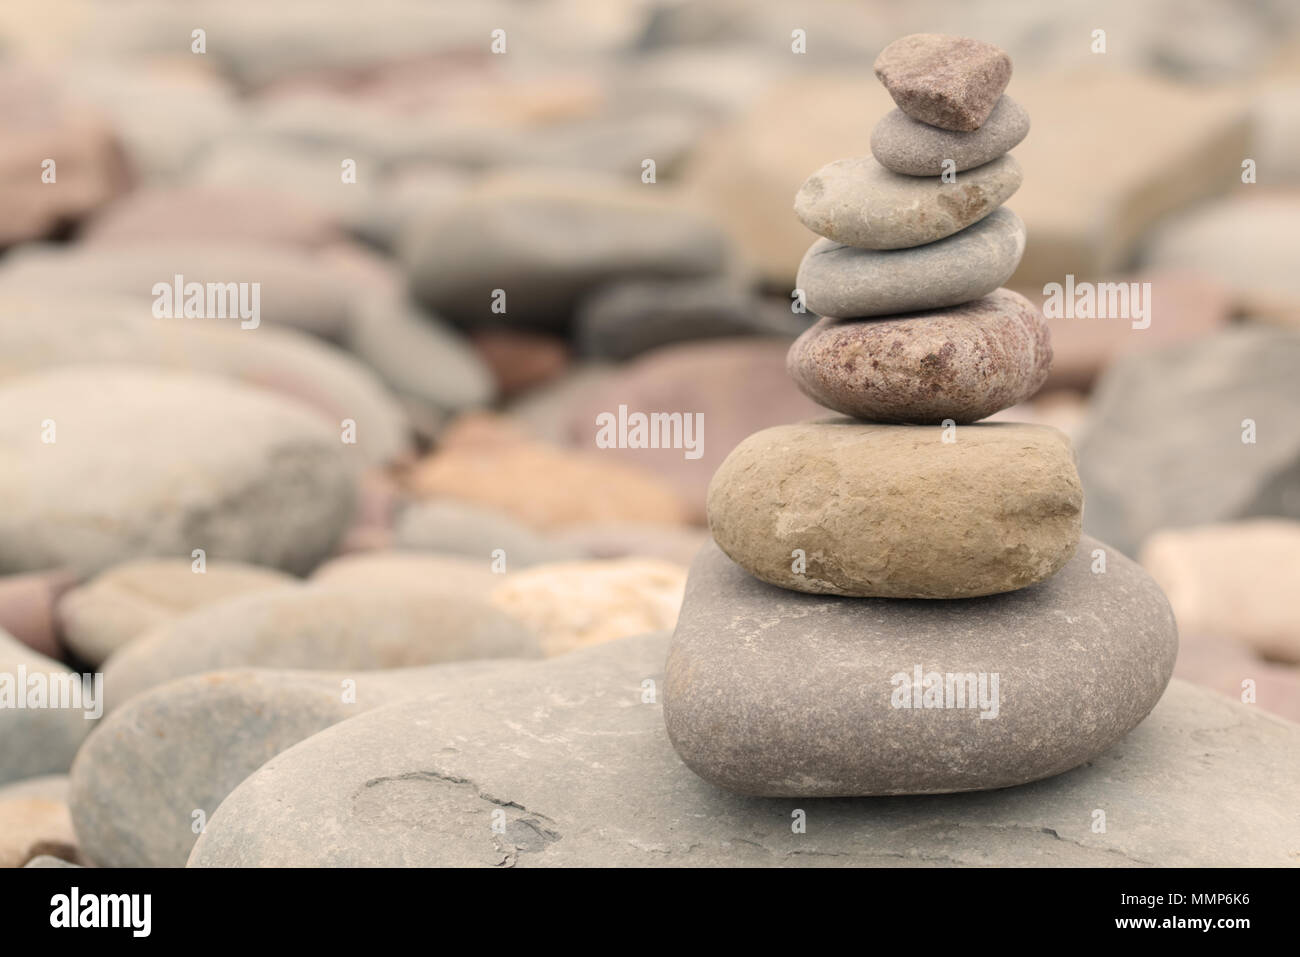 Pile of stones on a pebble beach in warm evening light. Calm peaceful zen concept - Stock Image